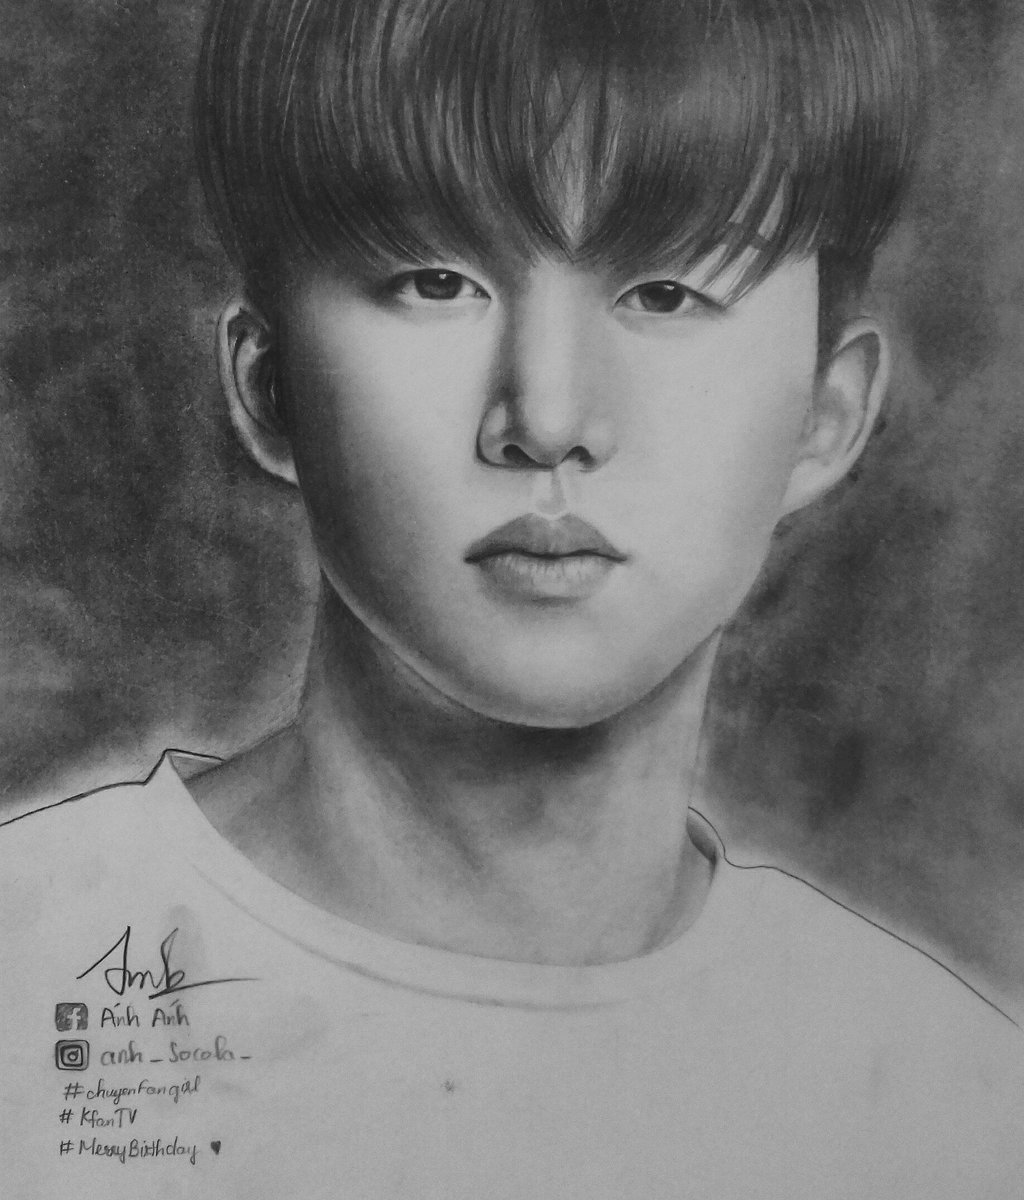 This is my B.I drawing. I drew it on his birthday. Please wait for another drawing of a member about to have a birthday.... comingsoon #ikon #hanbin #jinhwan #chanwoo #yunhyuong #donghyuk #junhoe #jiwon #june #dk #song #bi #chan #bobby #jay #FANART #fanartikon #drawing<br>http://pic.twitter.com/9ZhH0oTSeC